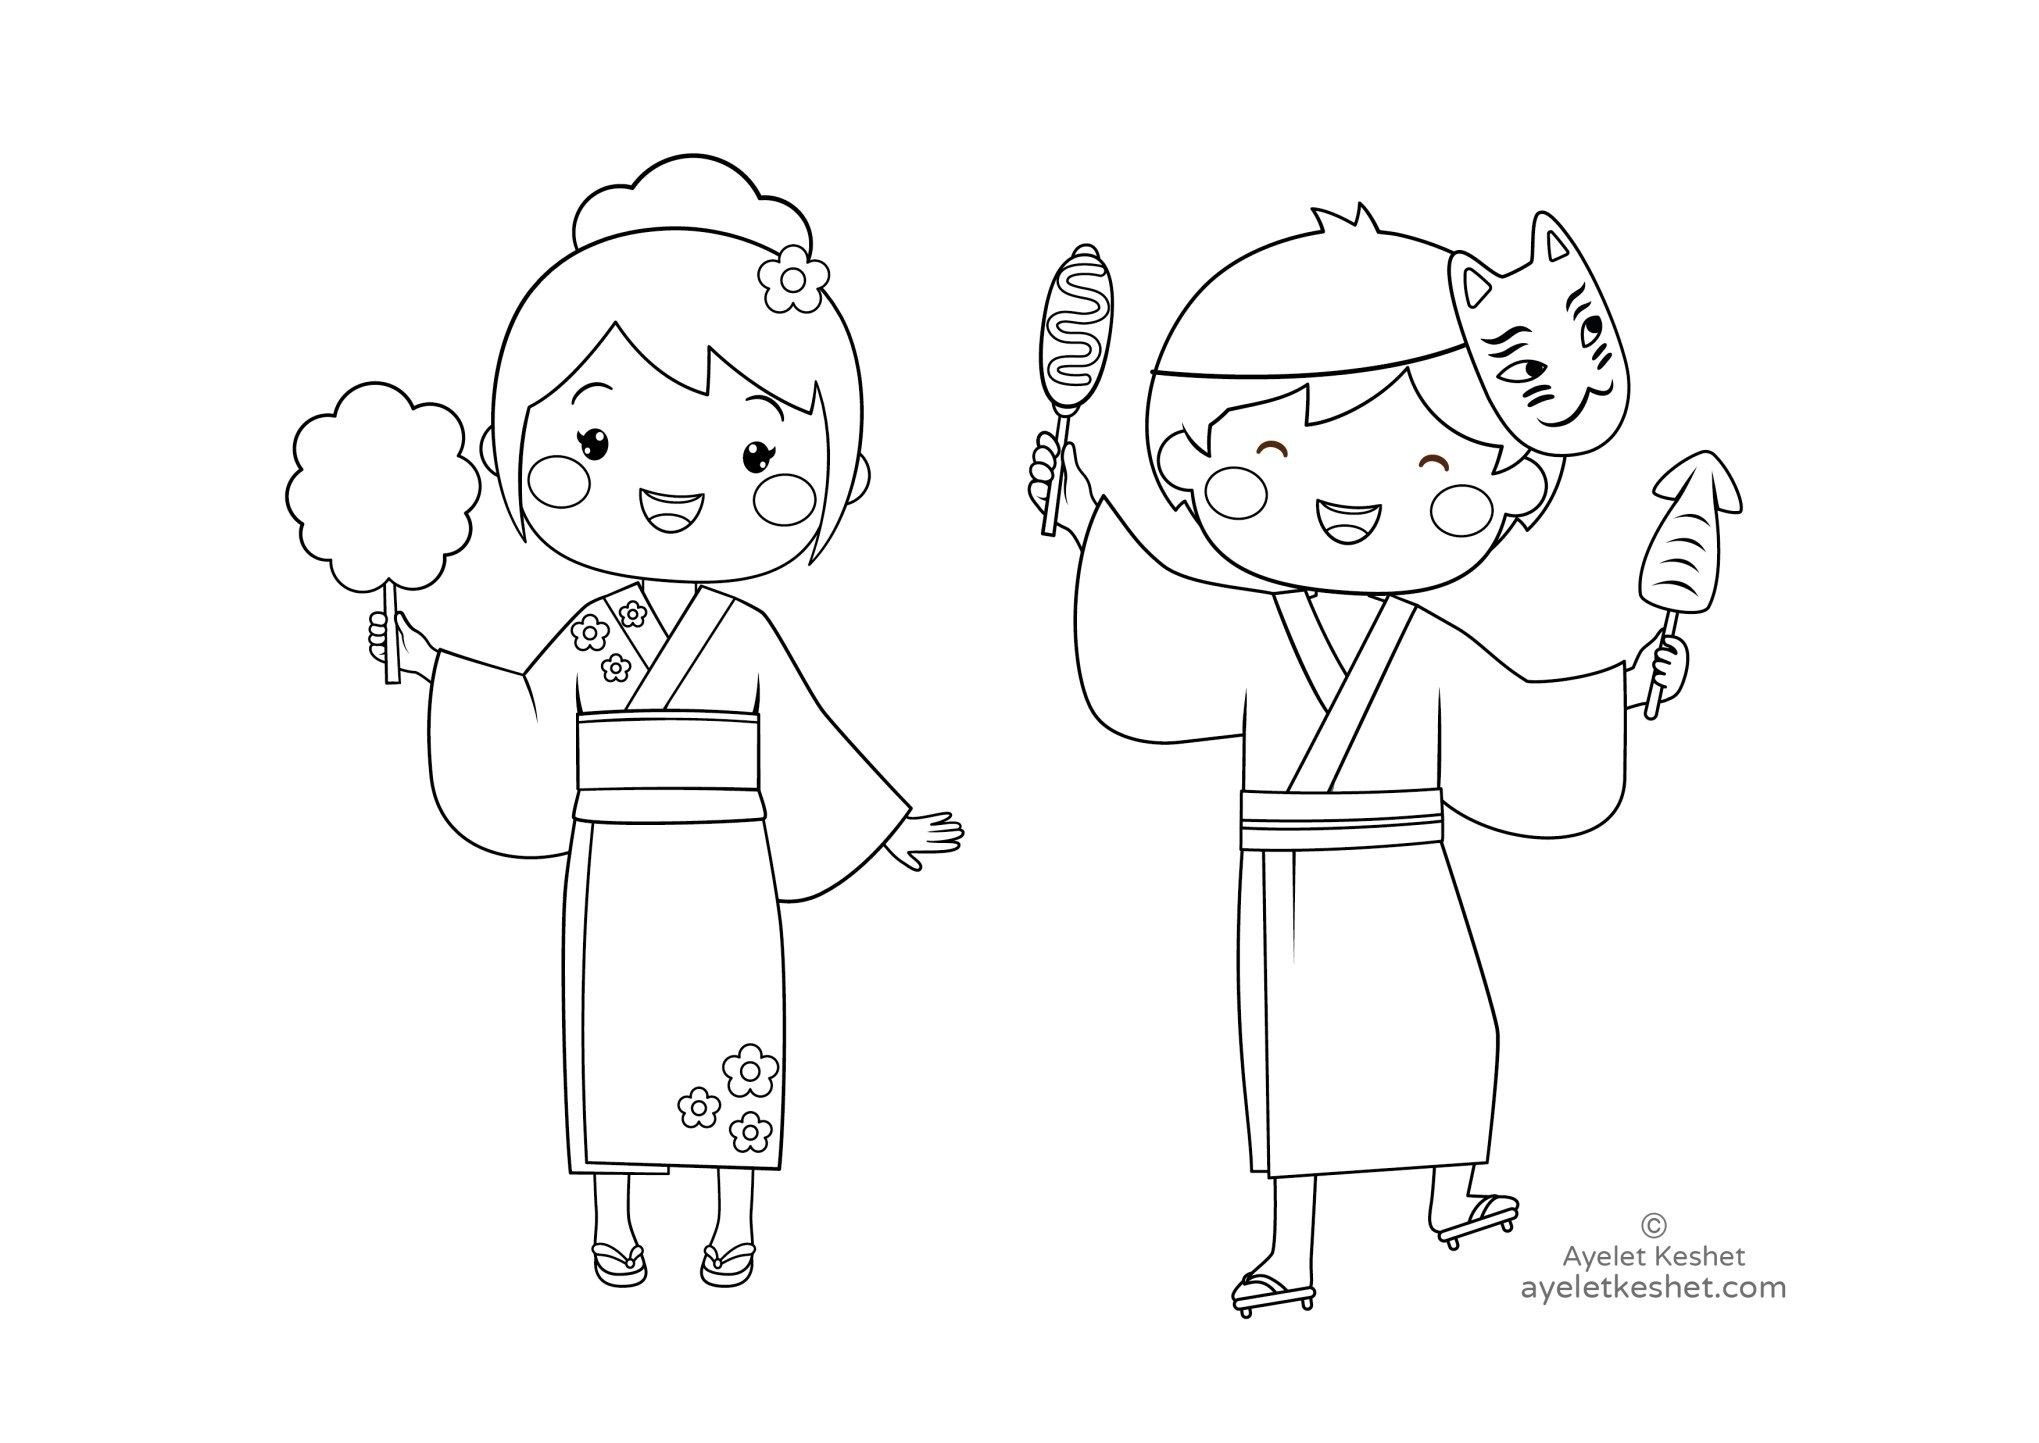 Japanese for Kids Worksheets Free Coloring Pages About Japan for Kids Ayelet Keshet